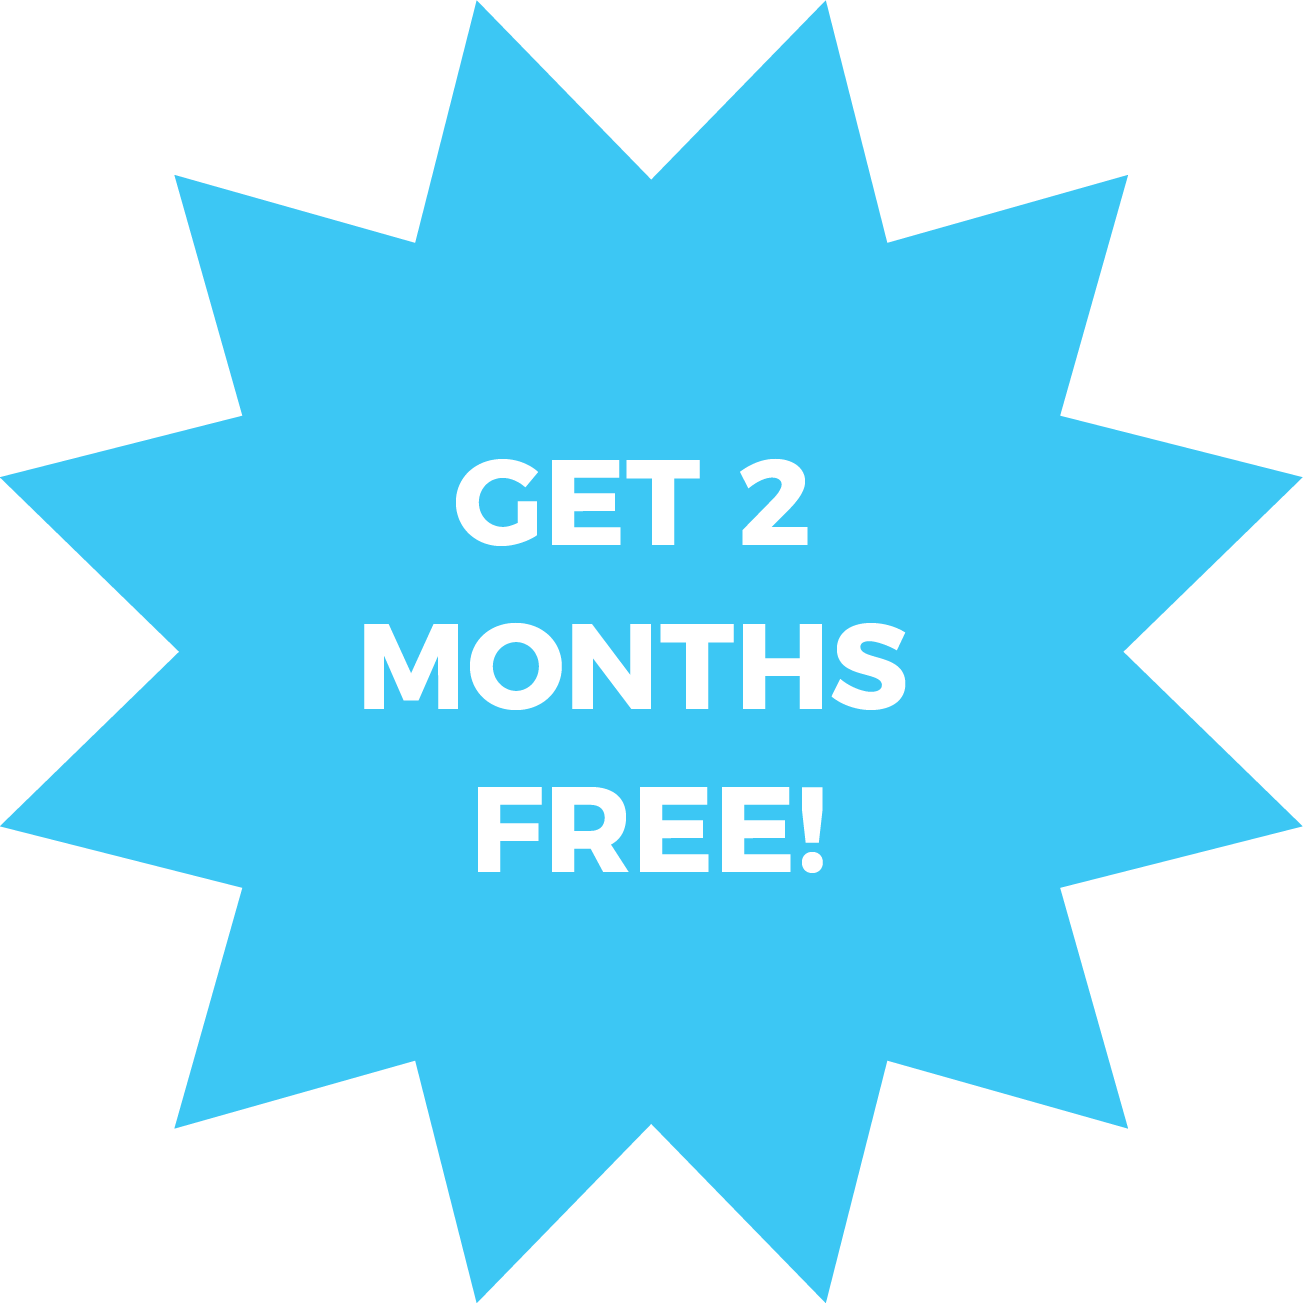 free-months-icon